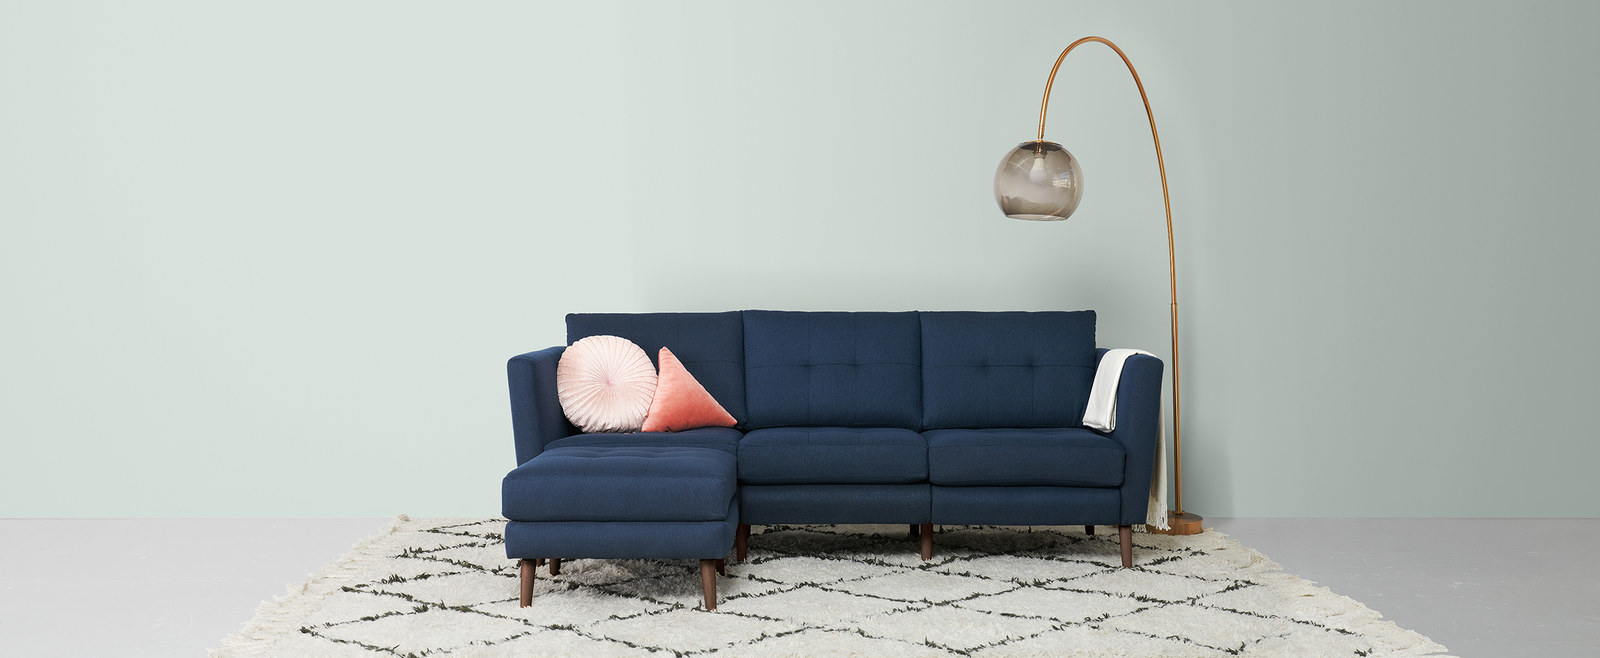 29 of the best places to buy a couch online rh buzzfeed com best places to buy sofas near me best places to buy sofas in vancouver